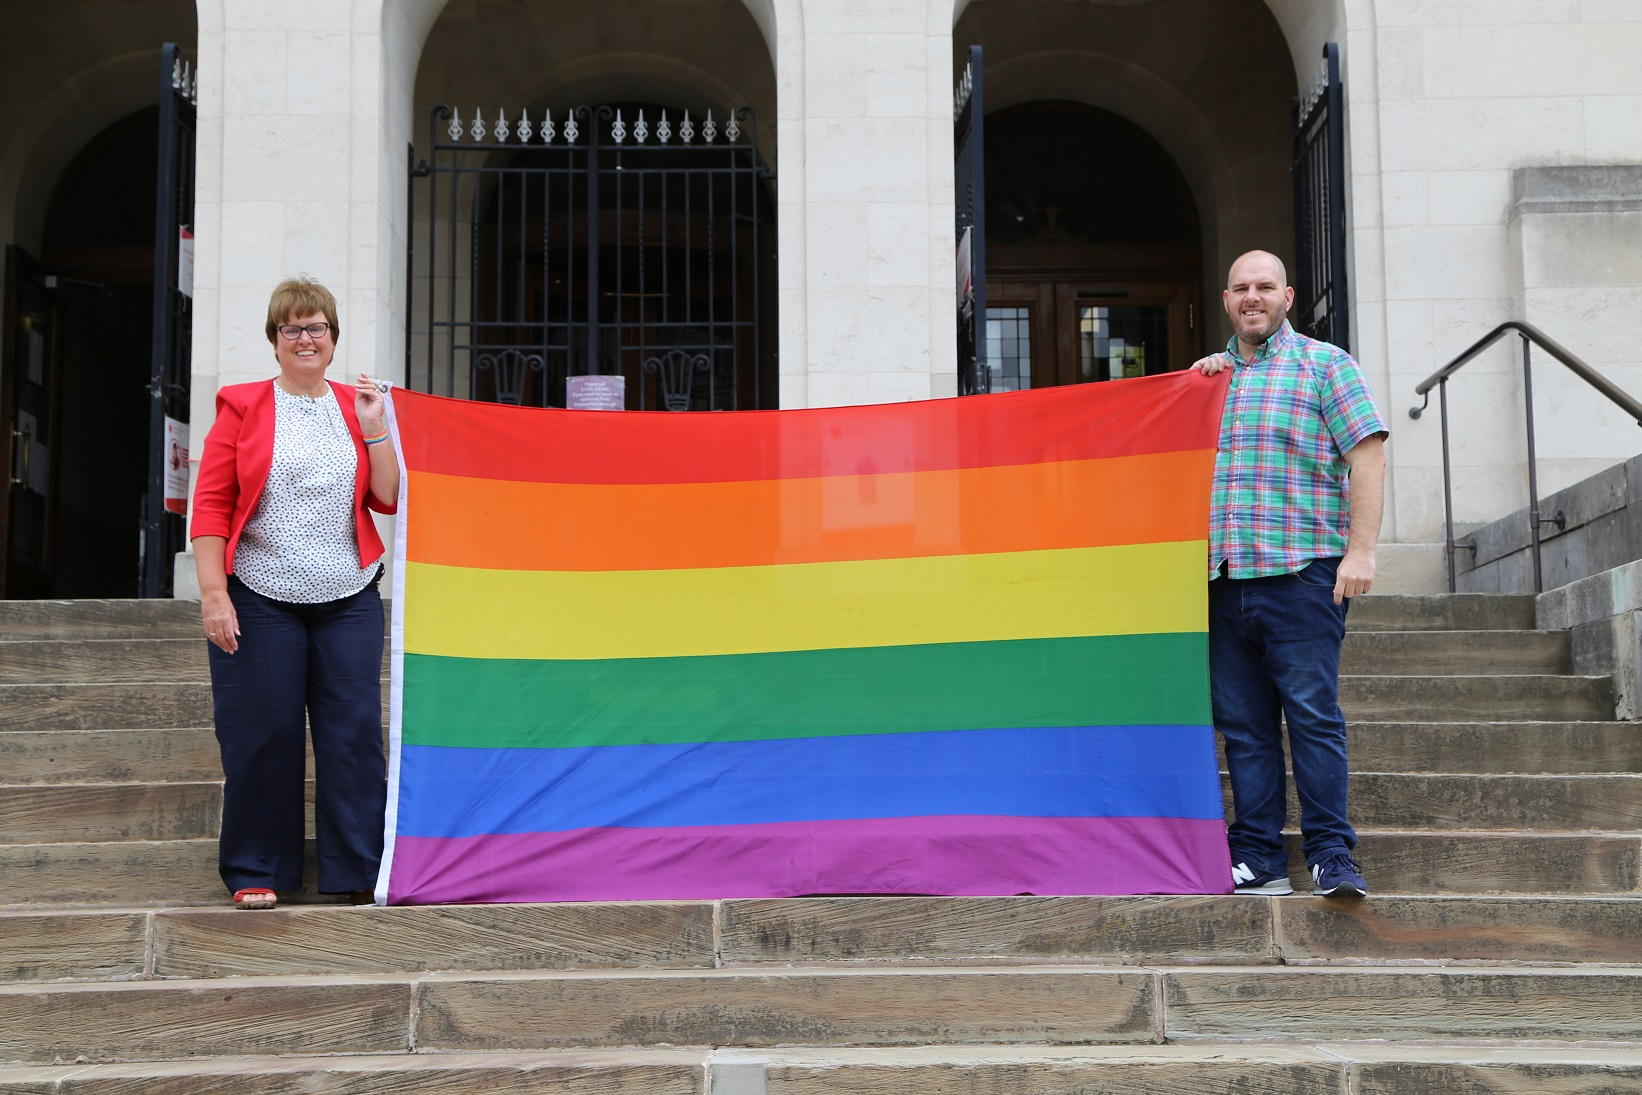 Chesterfield Borough Council and Chesterfield Pride join forces for this year's LGBQT+ community celebration